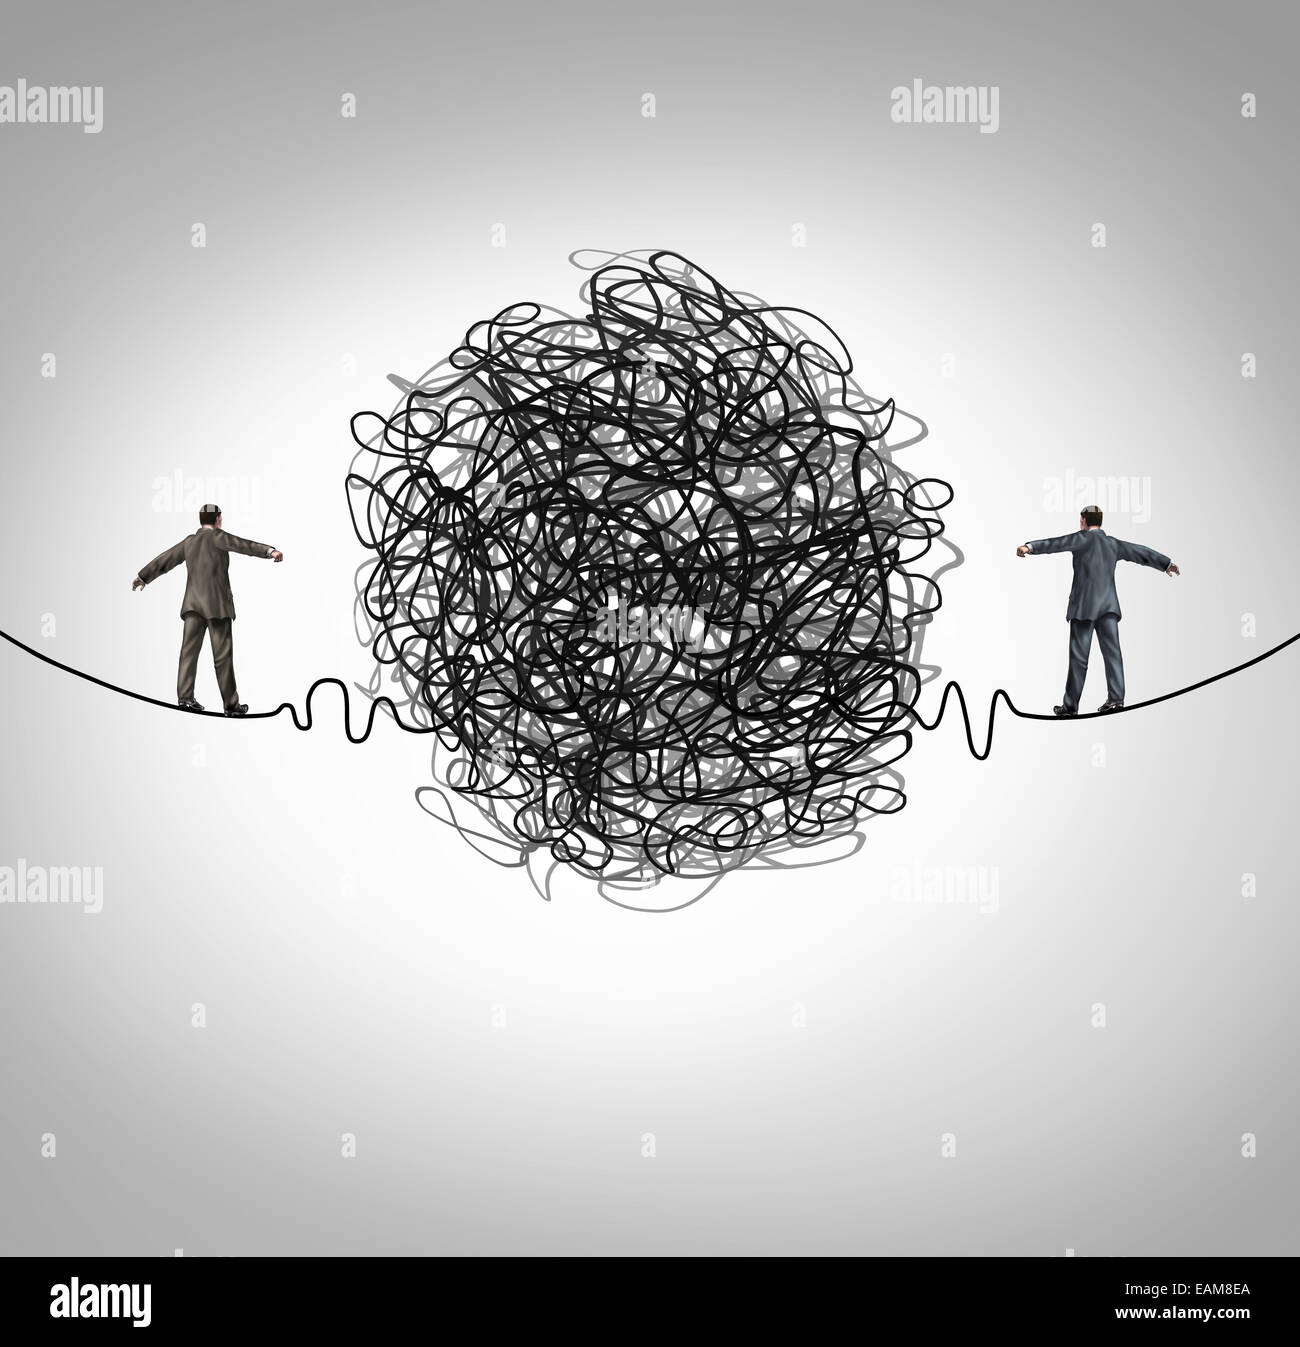 Partnership problem and business confrontation concept as two business people walking on a high wire tightrope with - Stock Image